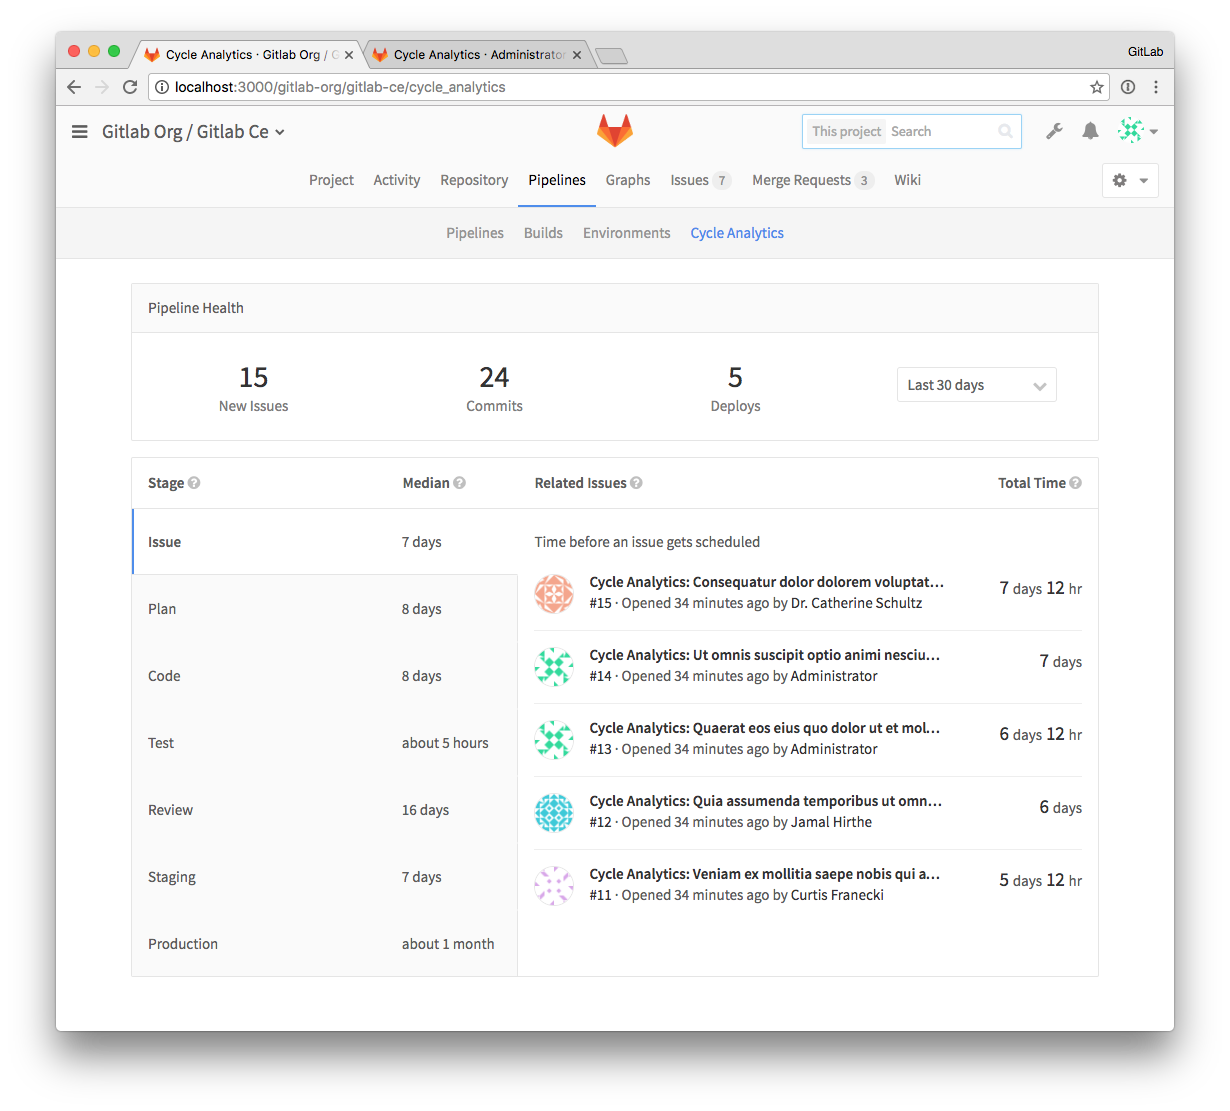 Improved Cycle Analytics in GitLab 8.14